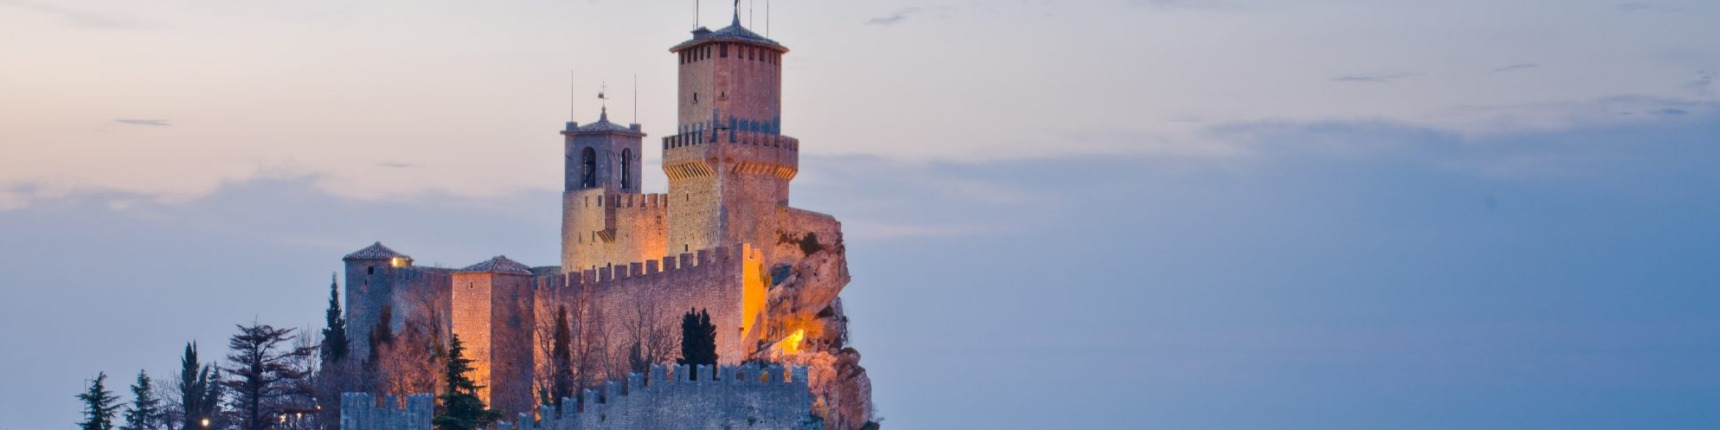 San marino travel guide plan your holiday in san marino for Flights to san marino italy